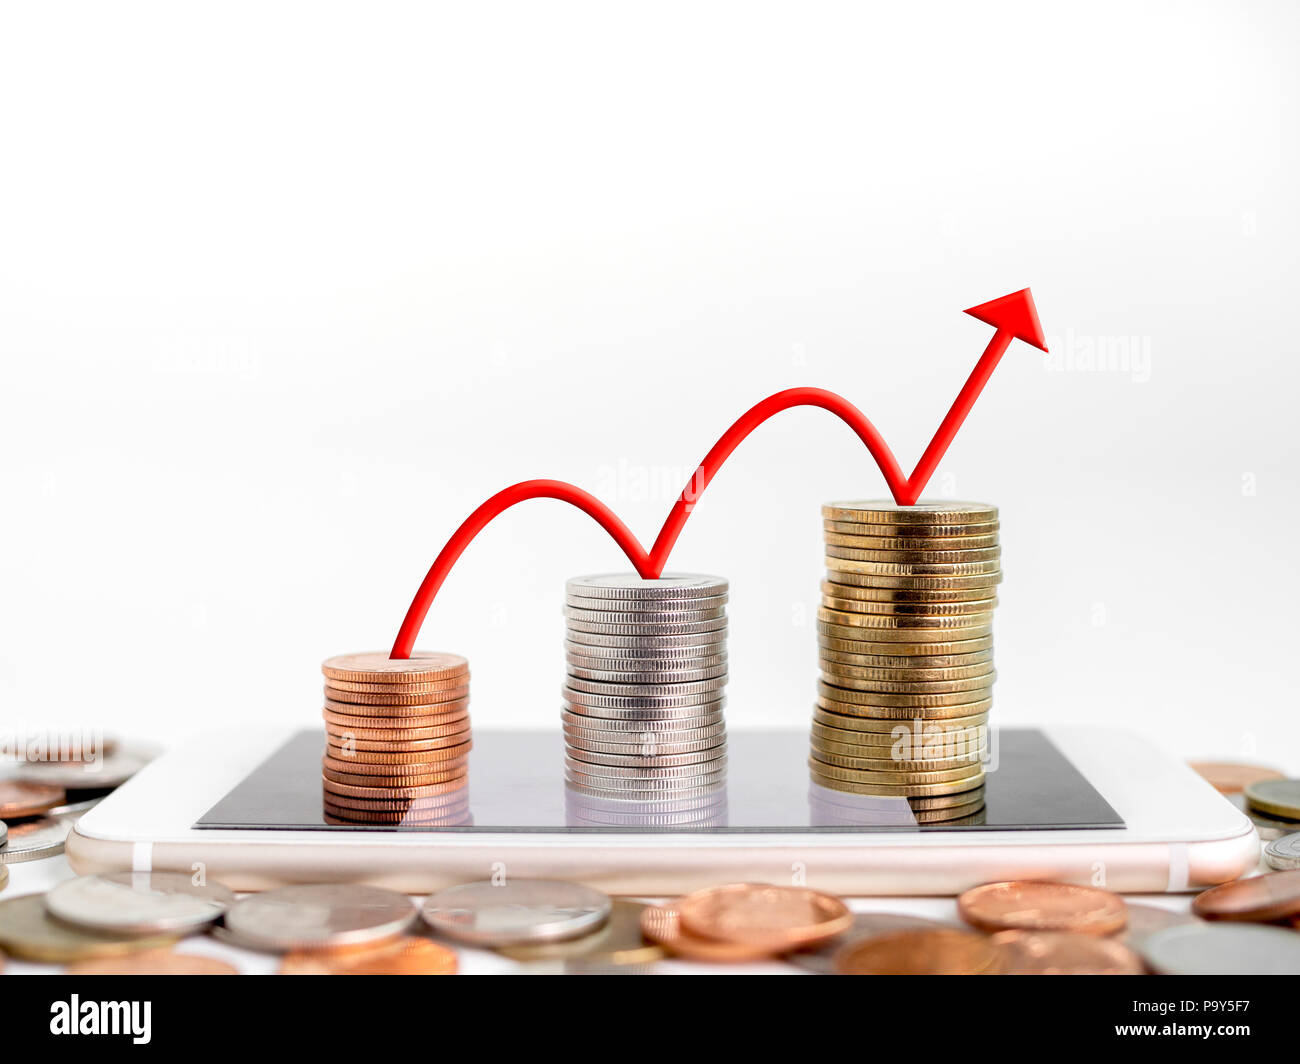 Making money online. Business financial online concept. money, stack of copper, silver and gold Coins on mobile Phone with red rising up arrow graph o - Stock Image